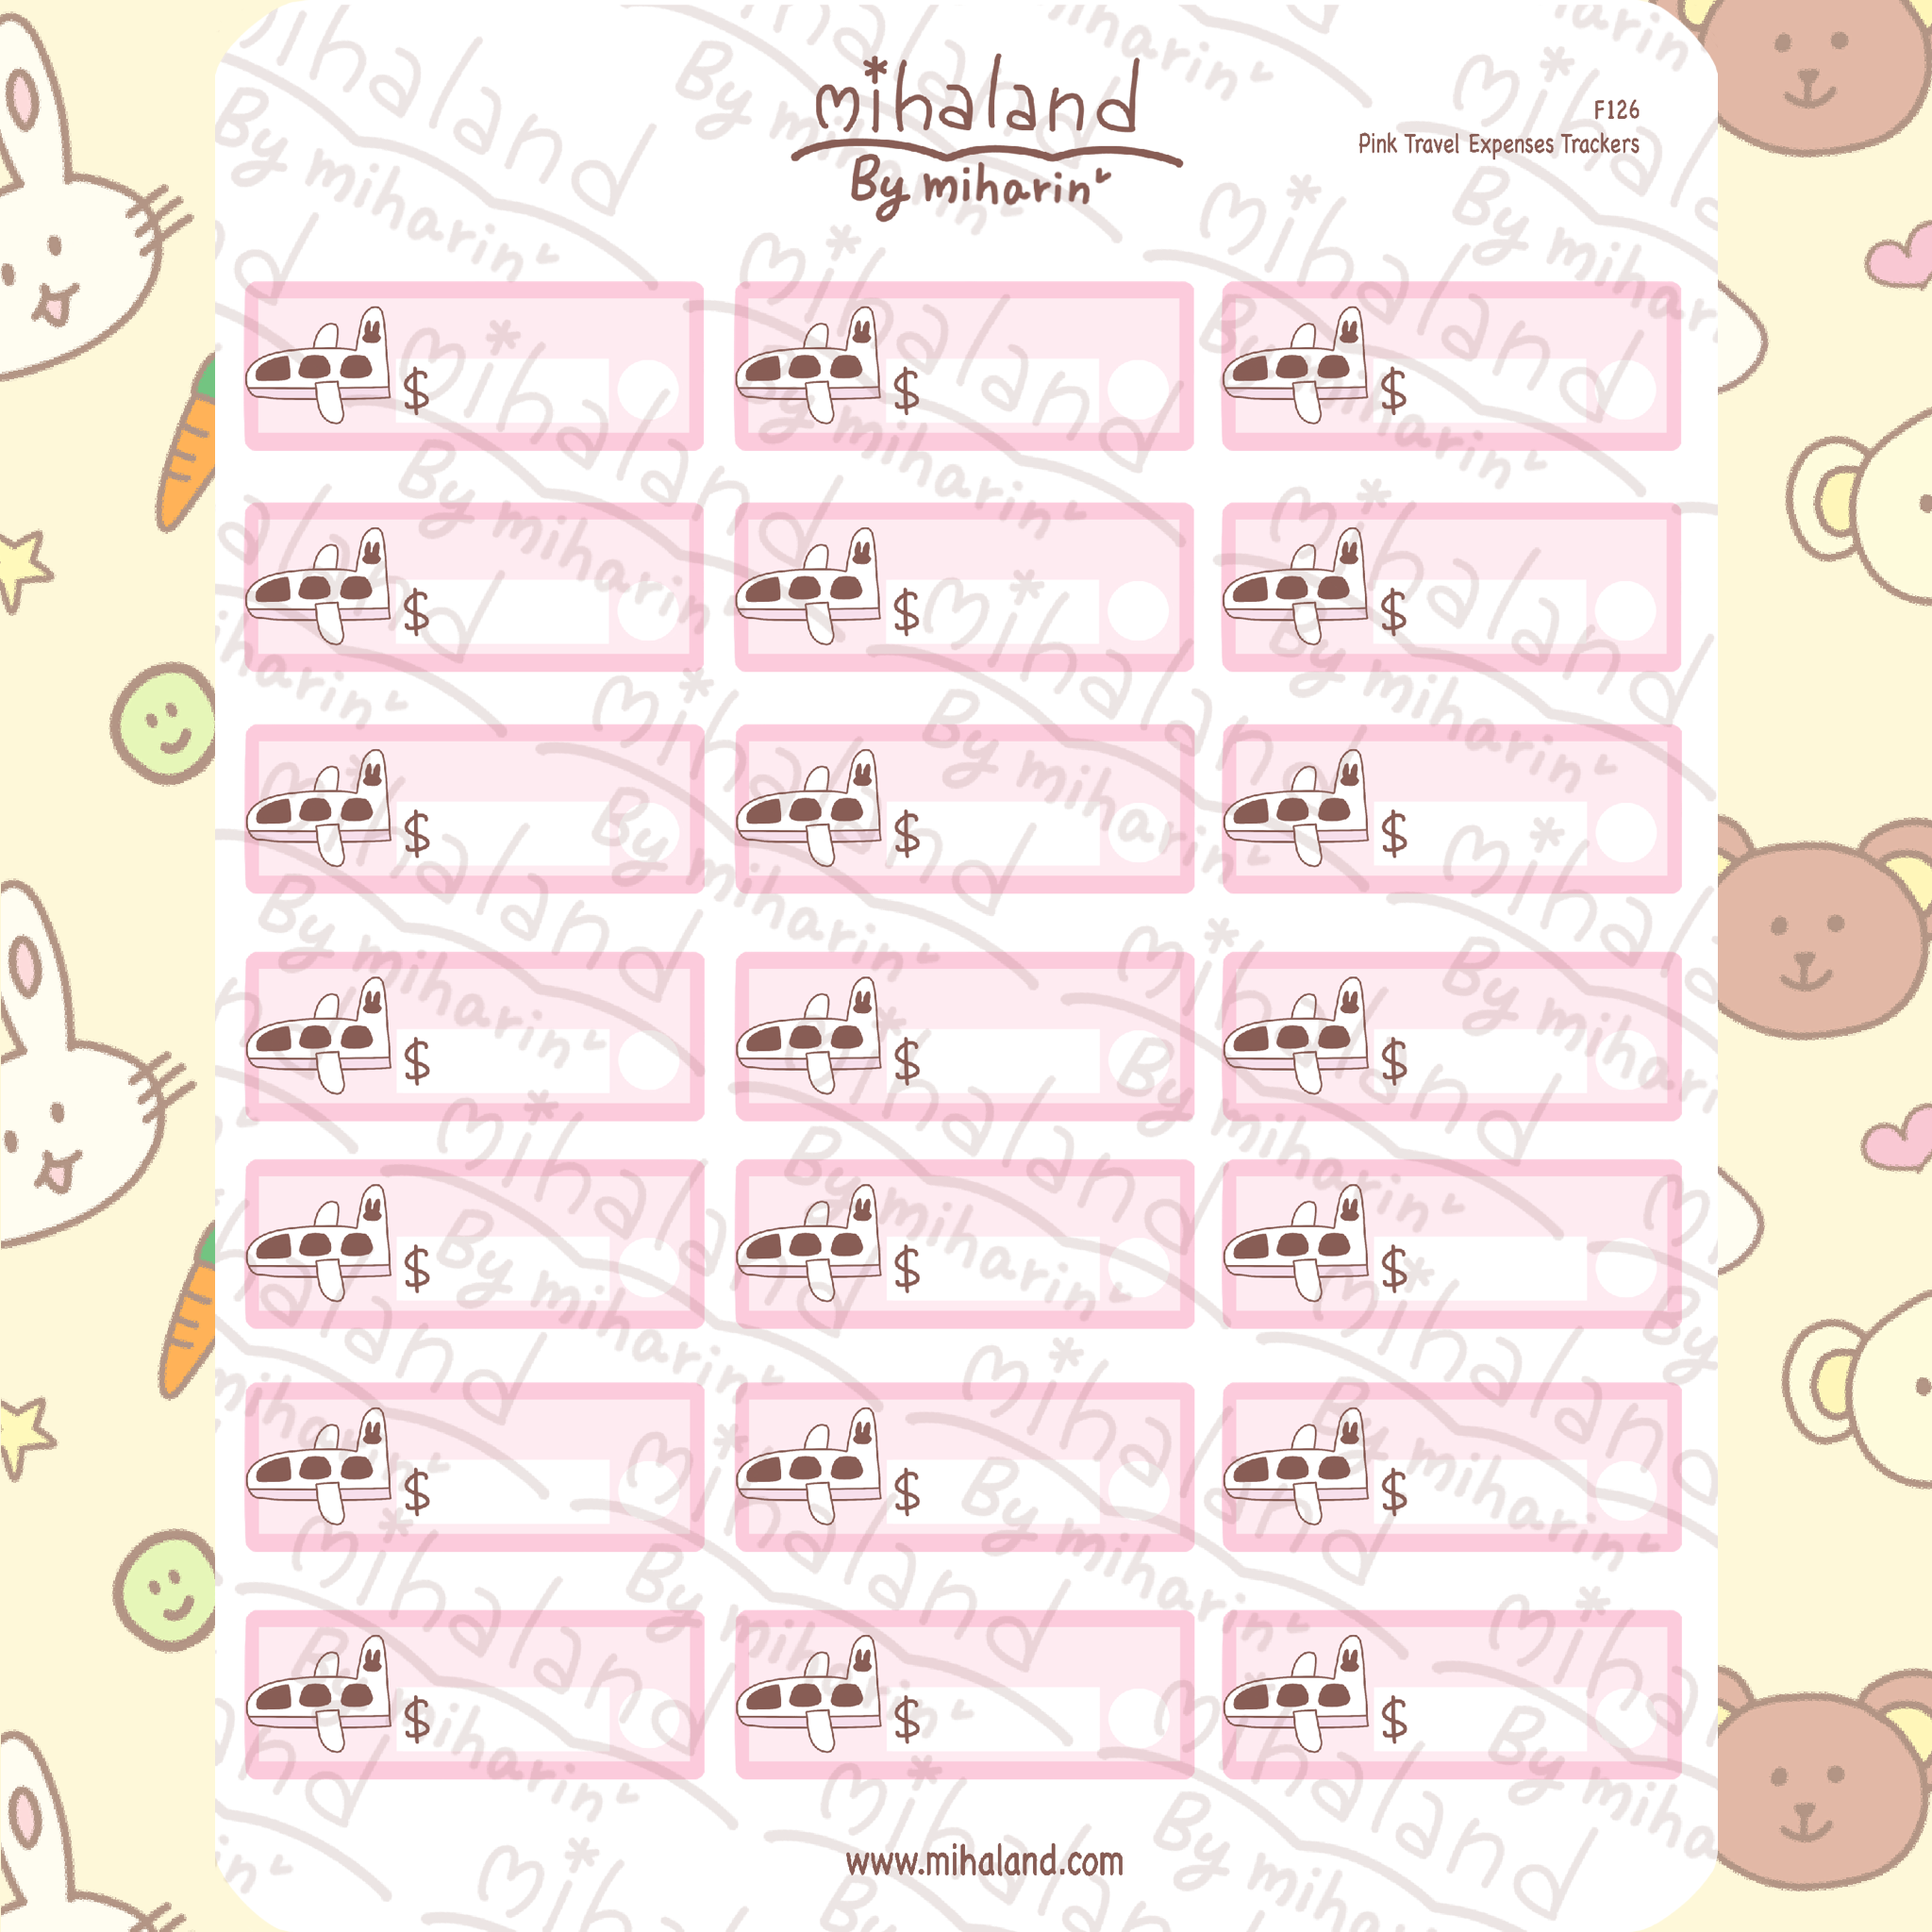 Pink Travel Expenses Trackers Planner Stickers (F126)